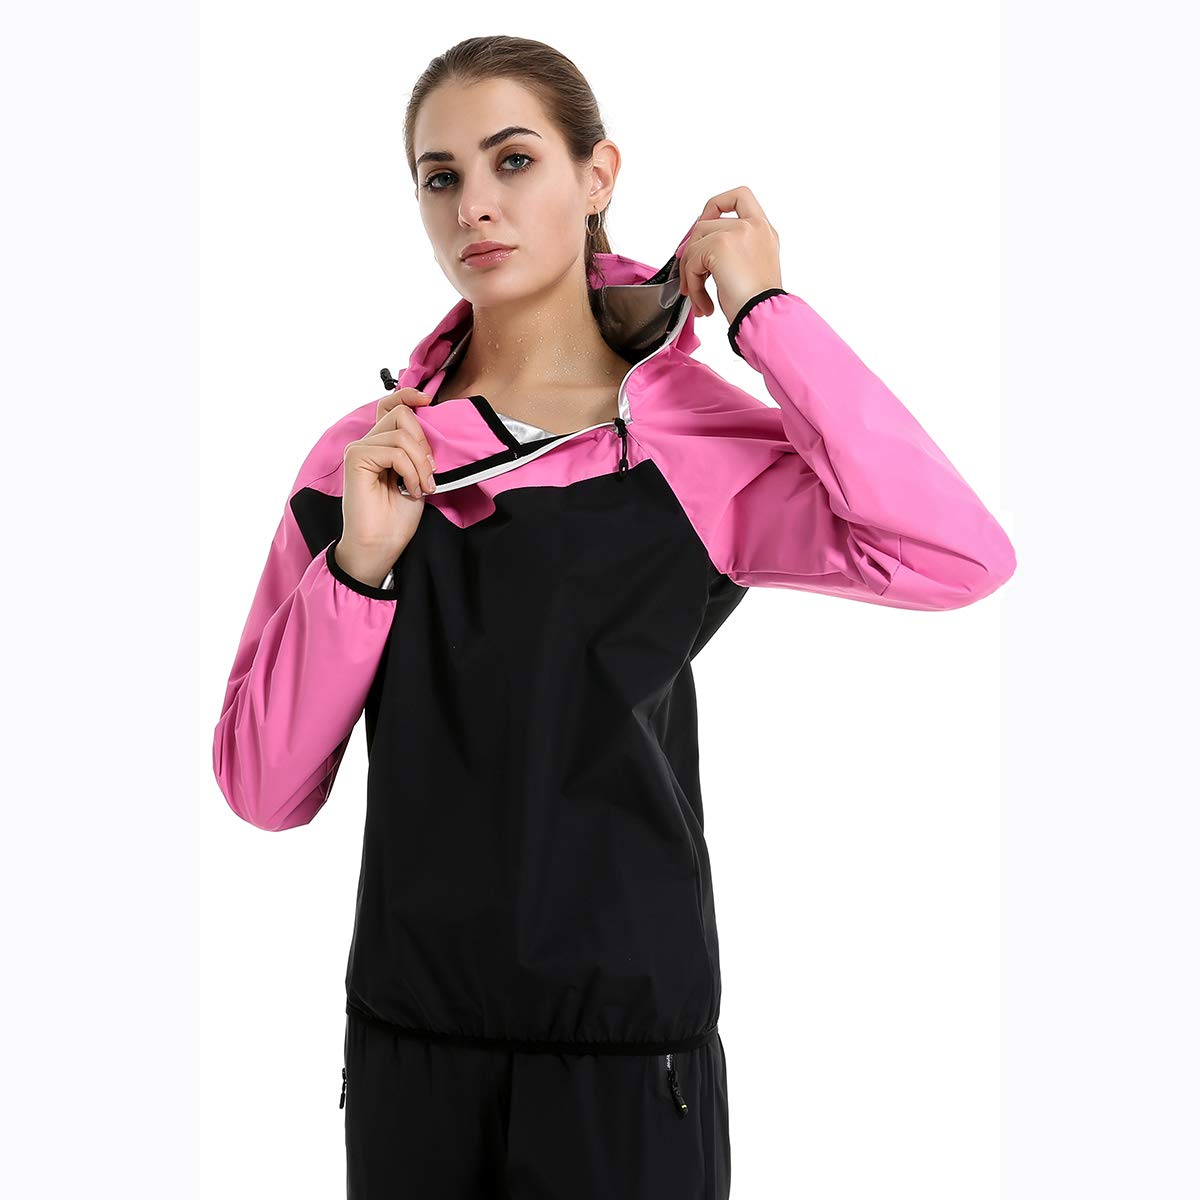 Lazysuit Sauna Suit Women Fitness Weight Loss Clothes (Pink, Small)